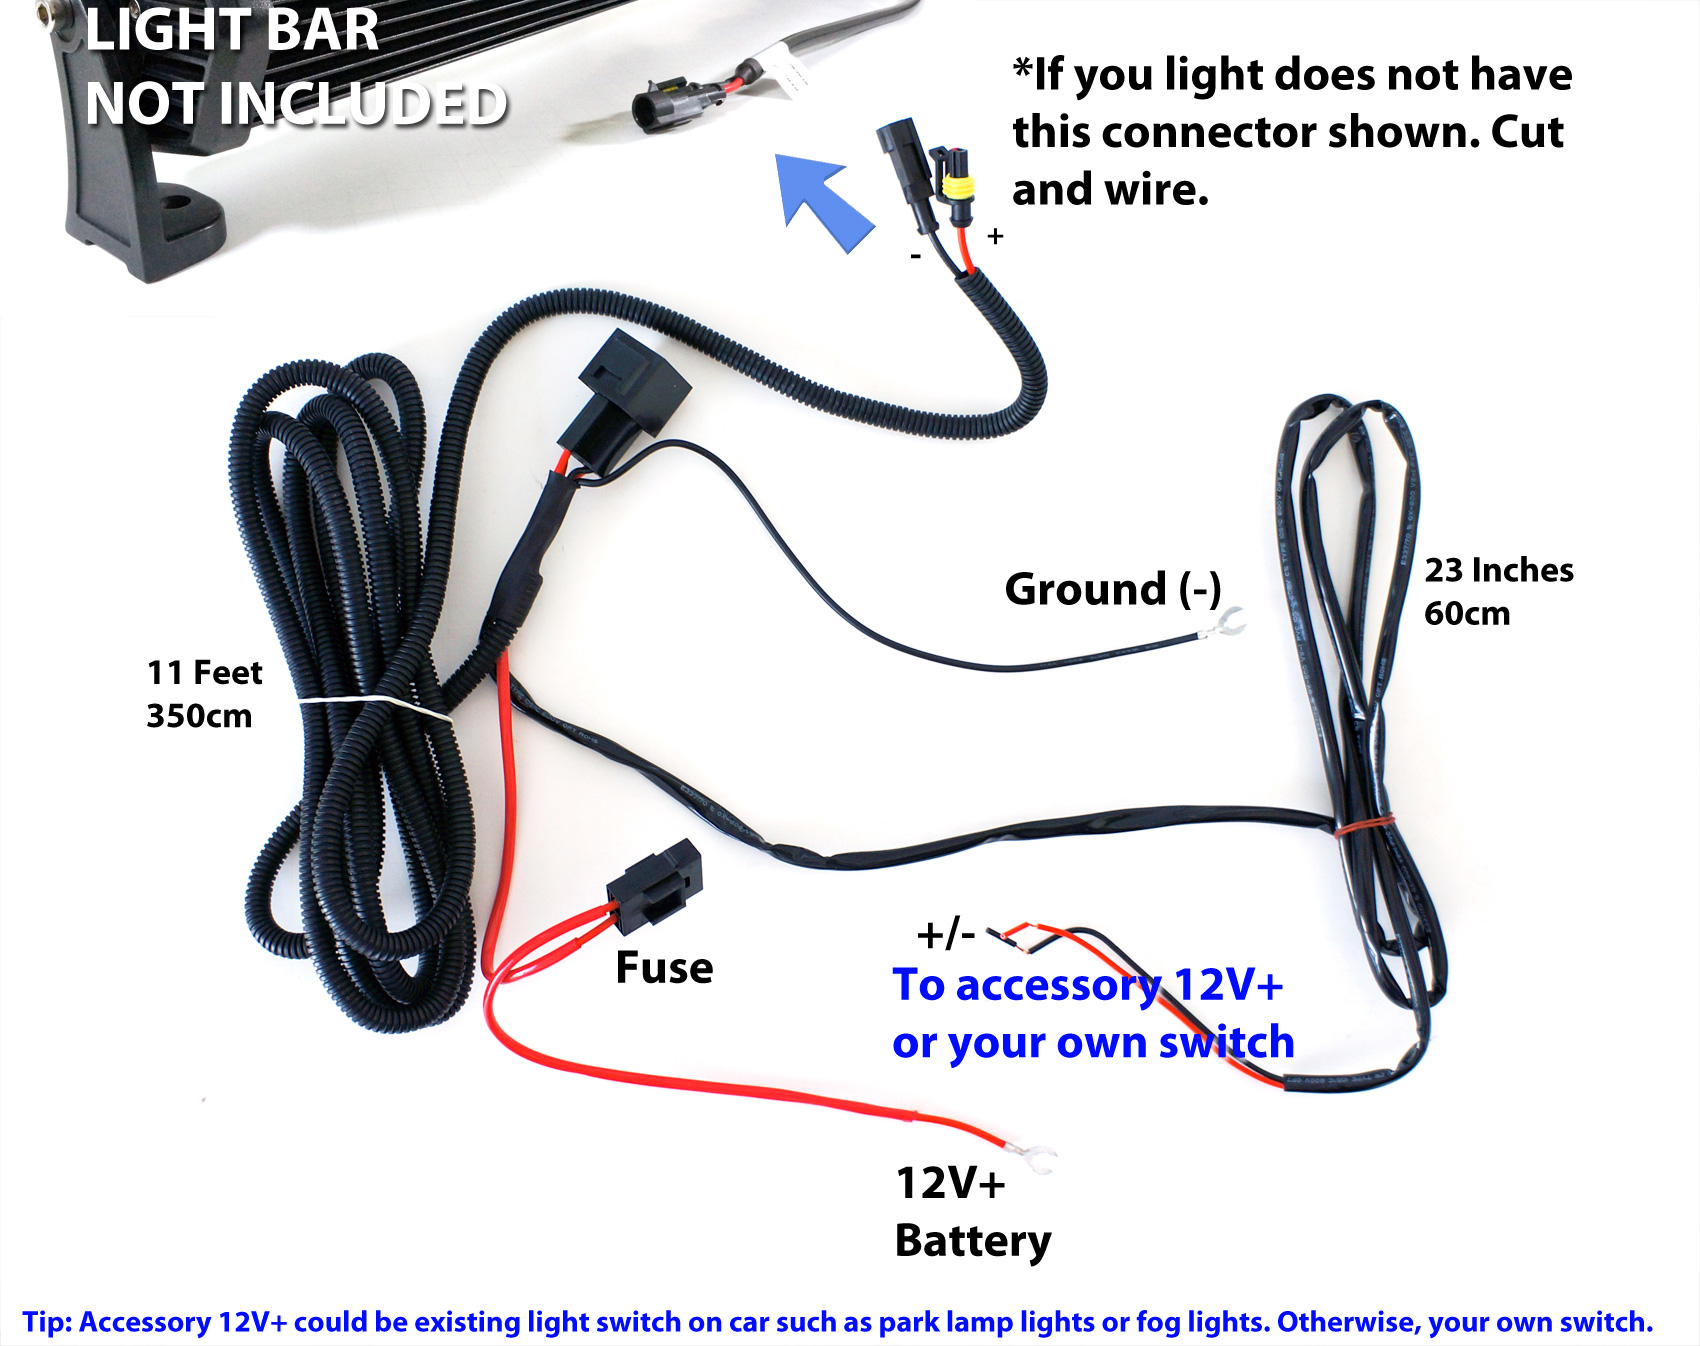 Light Bar Wiring Harness - Wiring Diagram 500 on light bar bulbs, light bar on 4 wheeler, light bar lights, light bars for trucks, light bar battery, light bar switches, light bar bracket, light bar 24 in, light bar cover, light switch battery wiring, light bar bumper, light bar windshield, light bar headlights, light bar control box, light bar switch harness, light bar wiring labels,